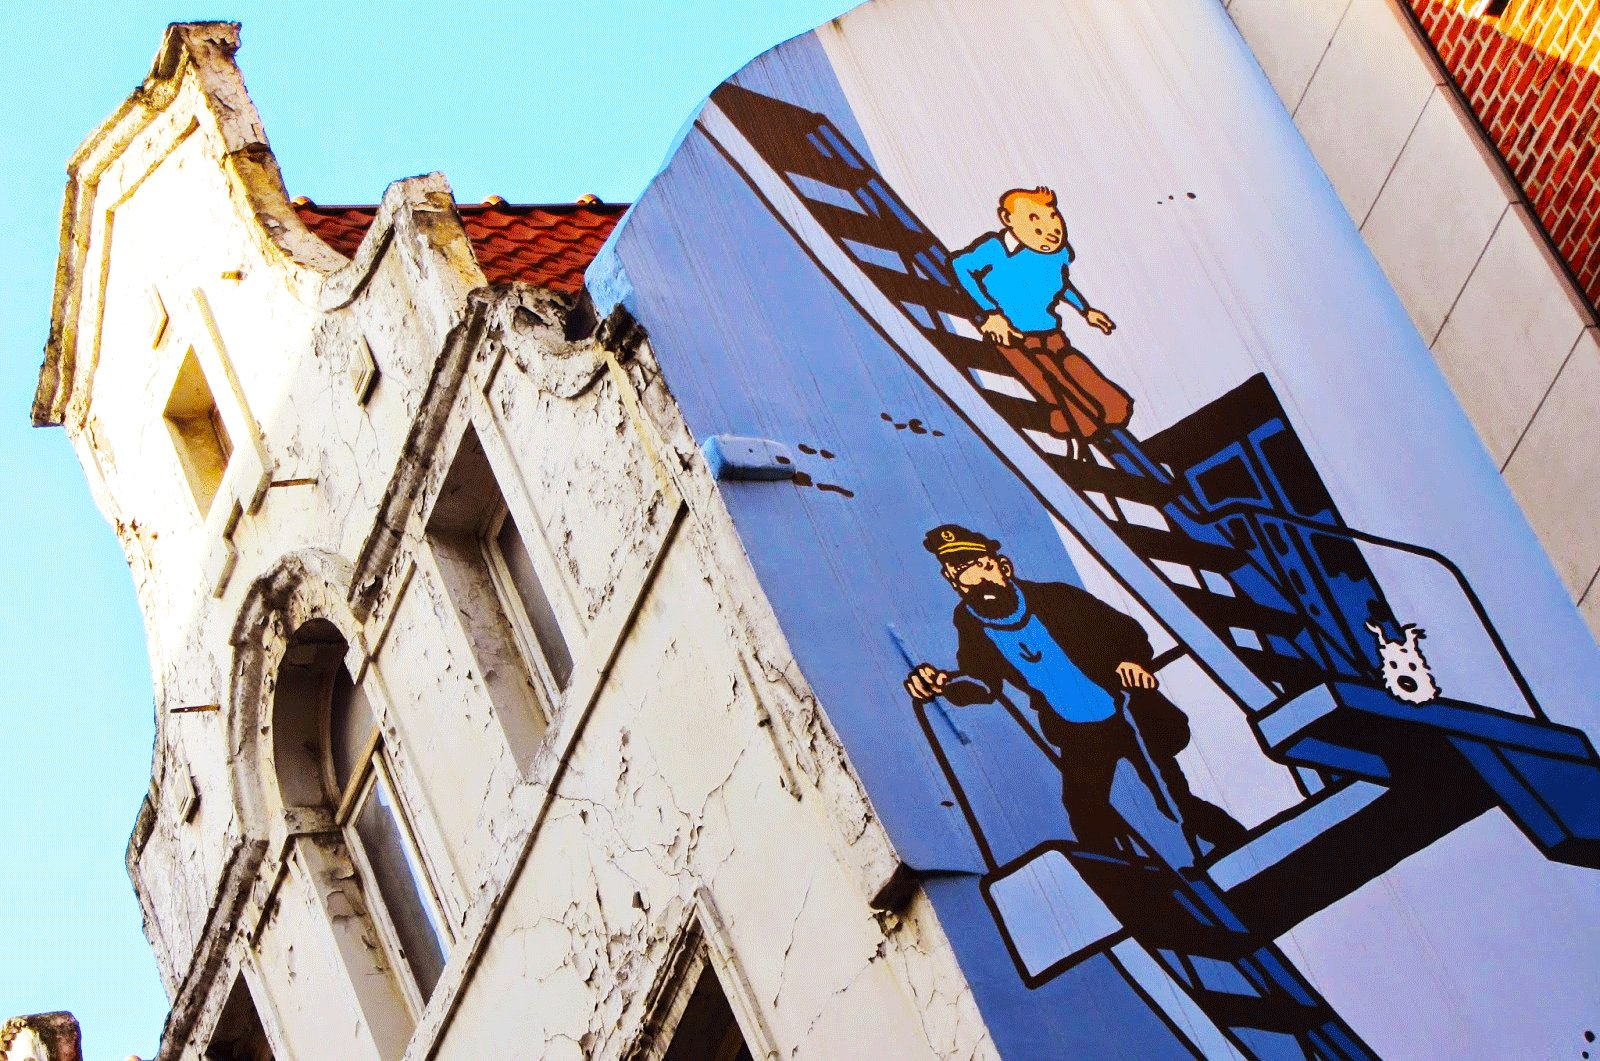 How to take comic strip route in Brussels